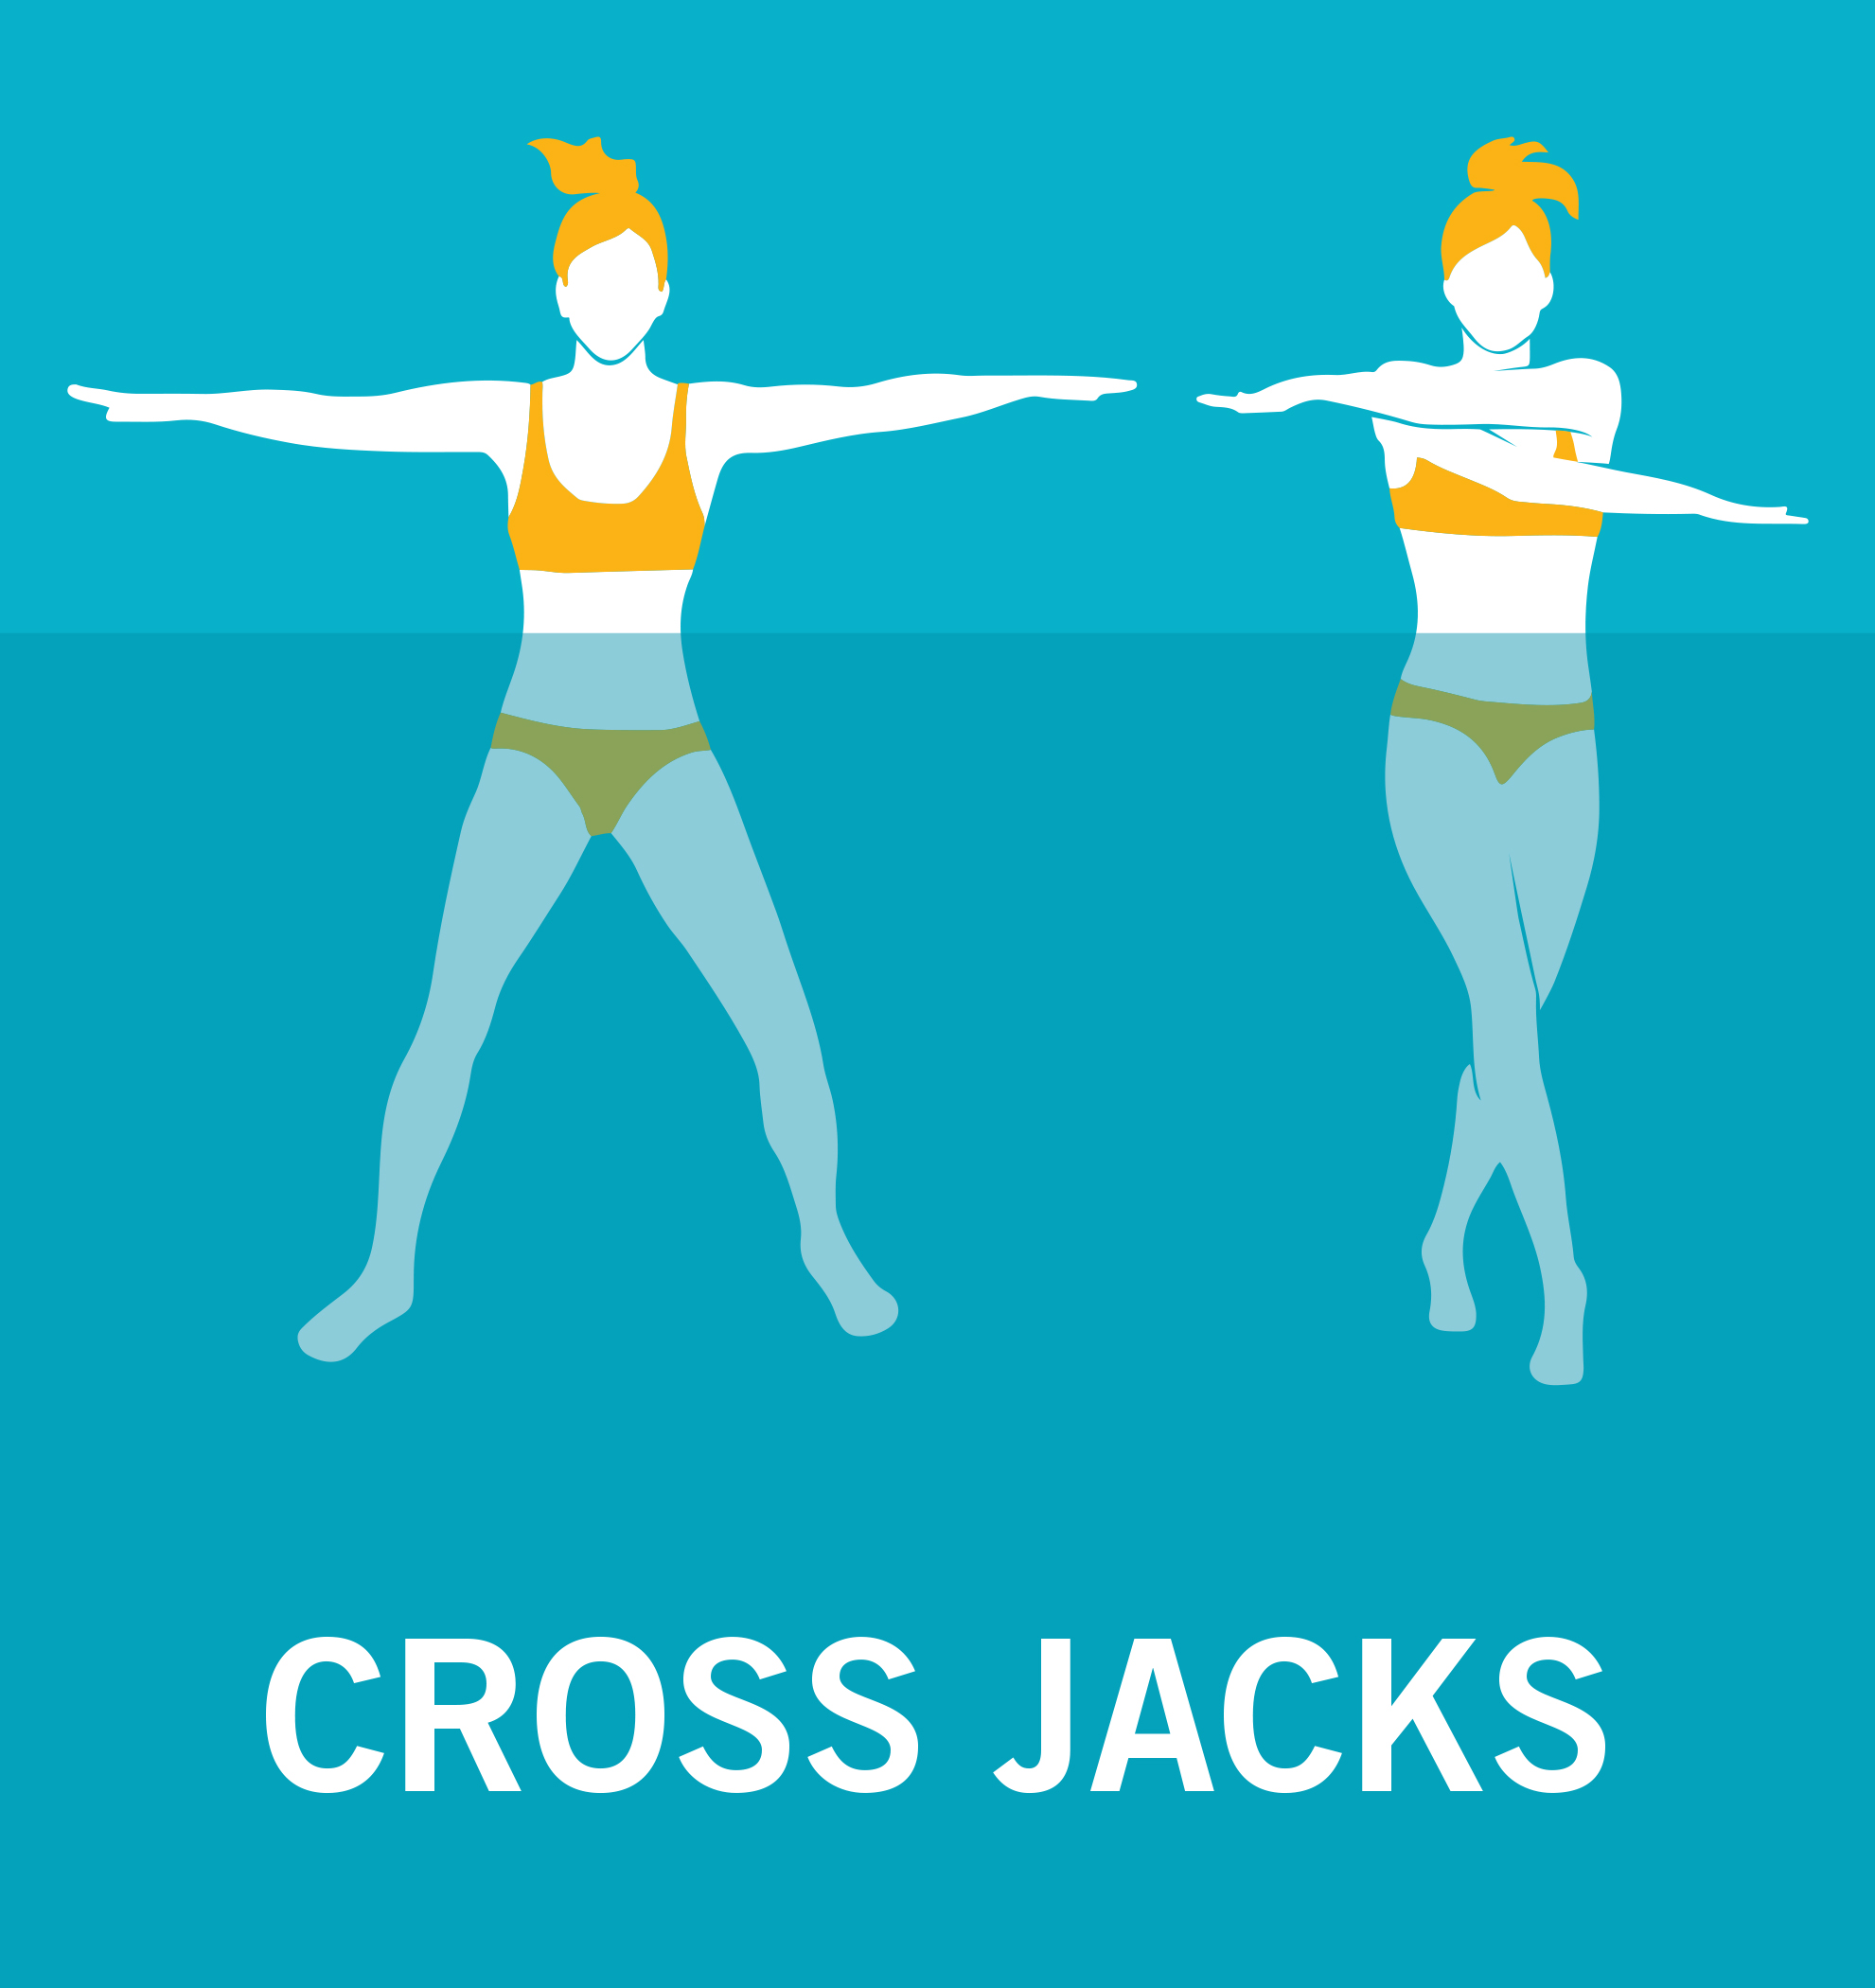 Cross Jacks